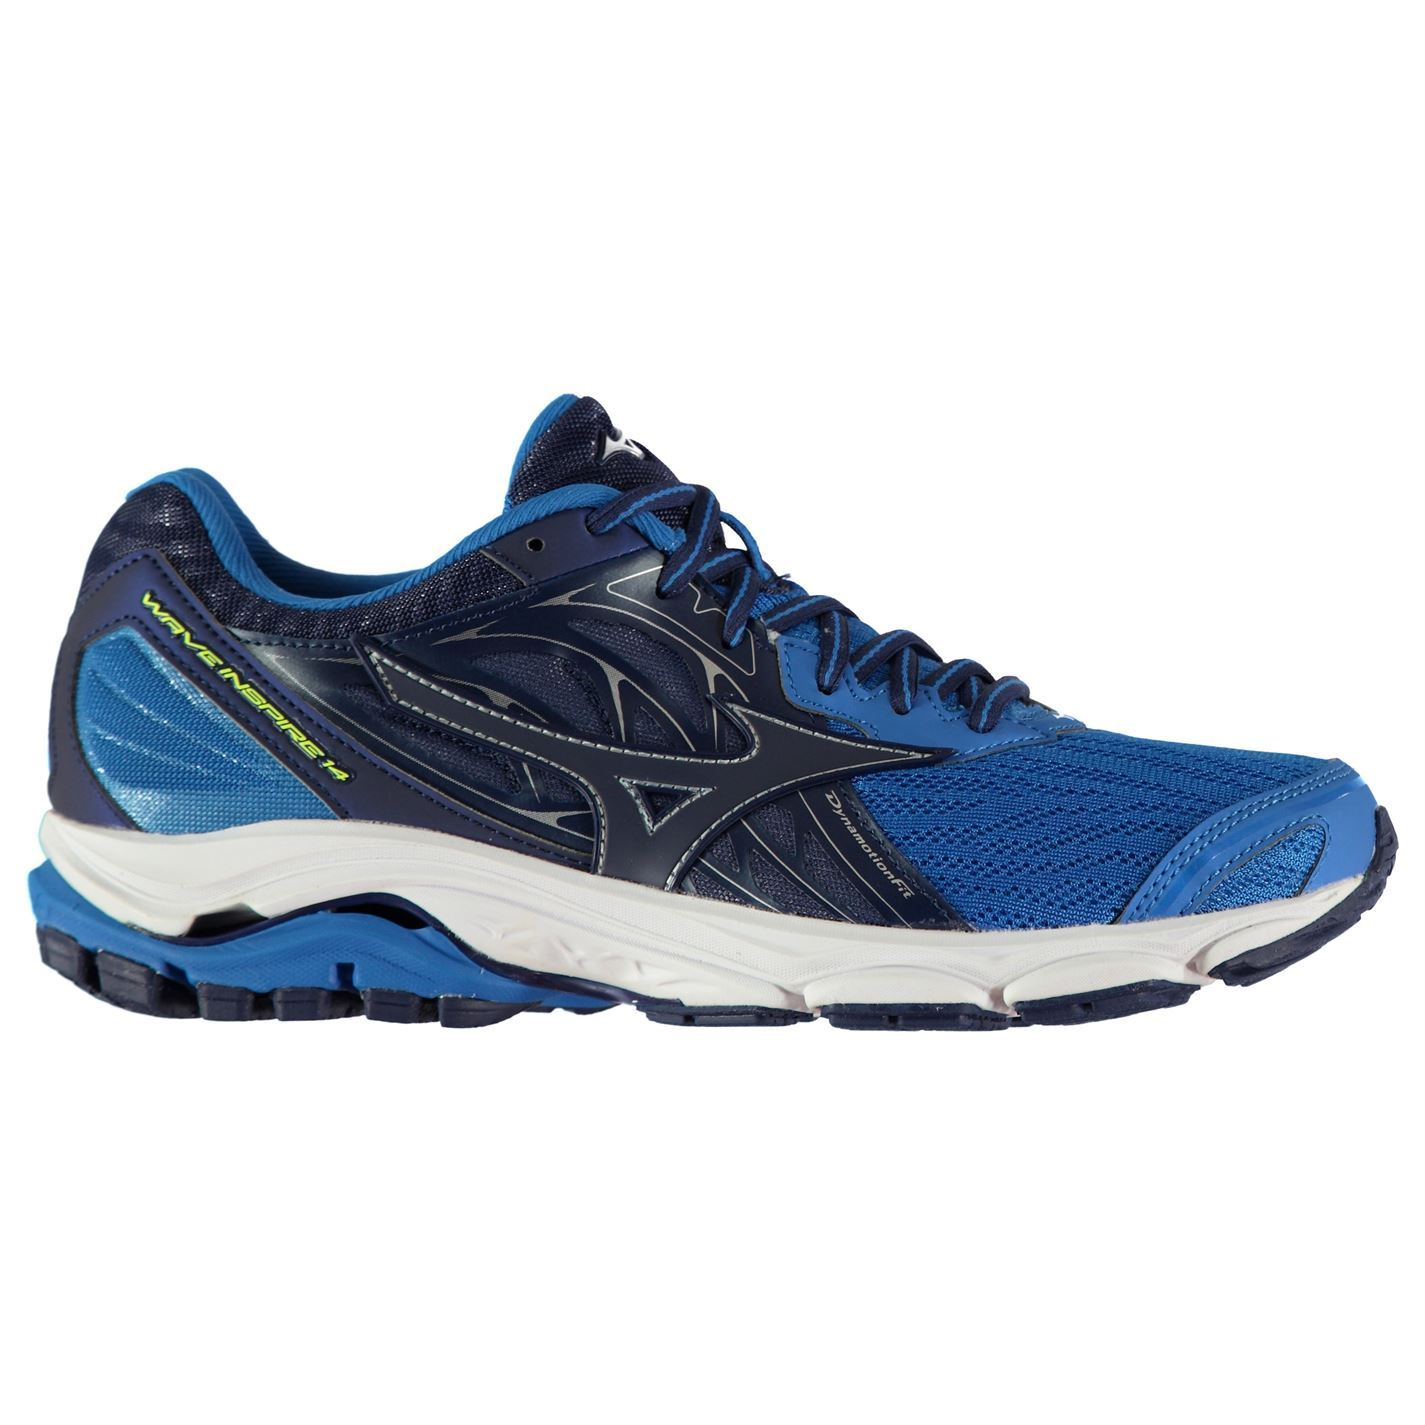 eac21d5908 Mizuno Wave Inspire 14 Running Shoes Mens Fitness Jogging Trainers ...